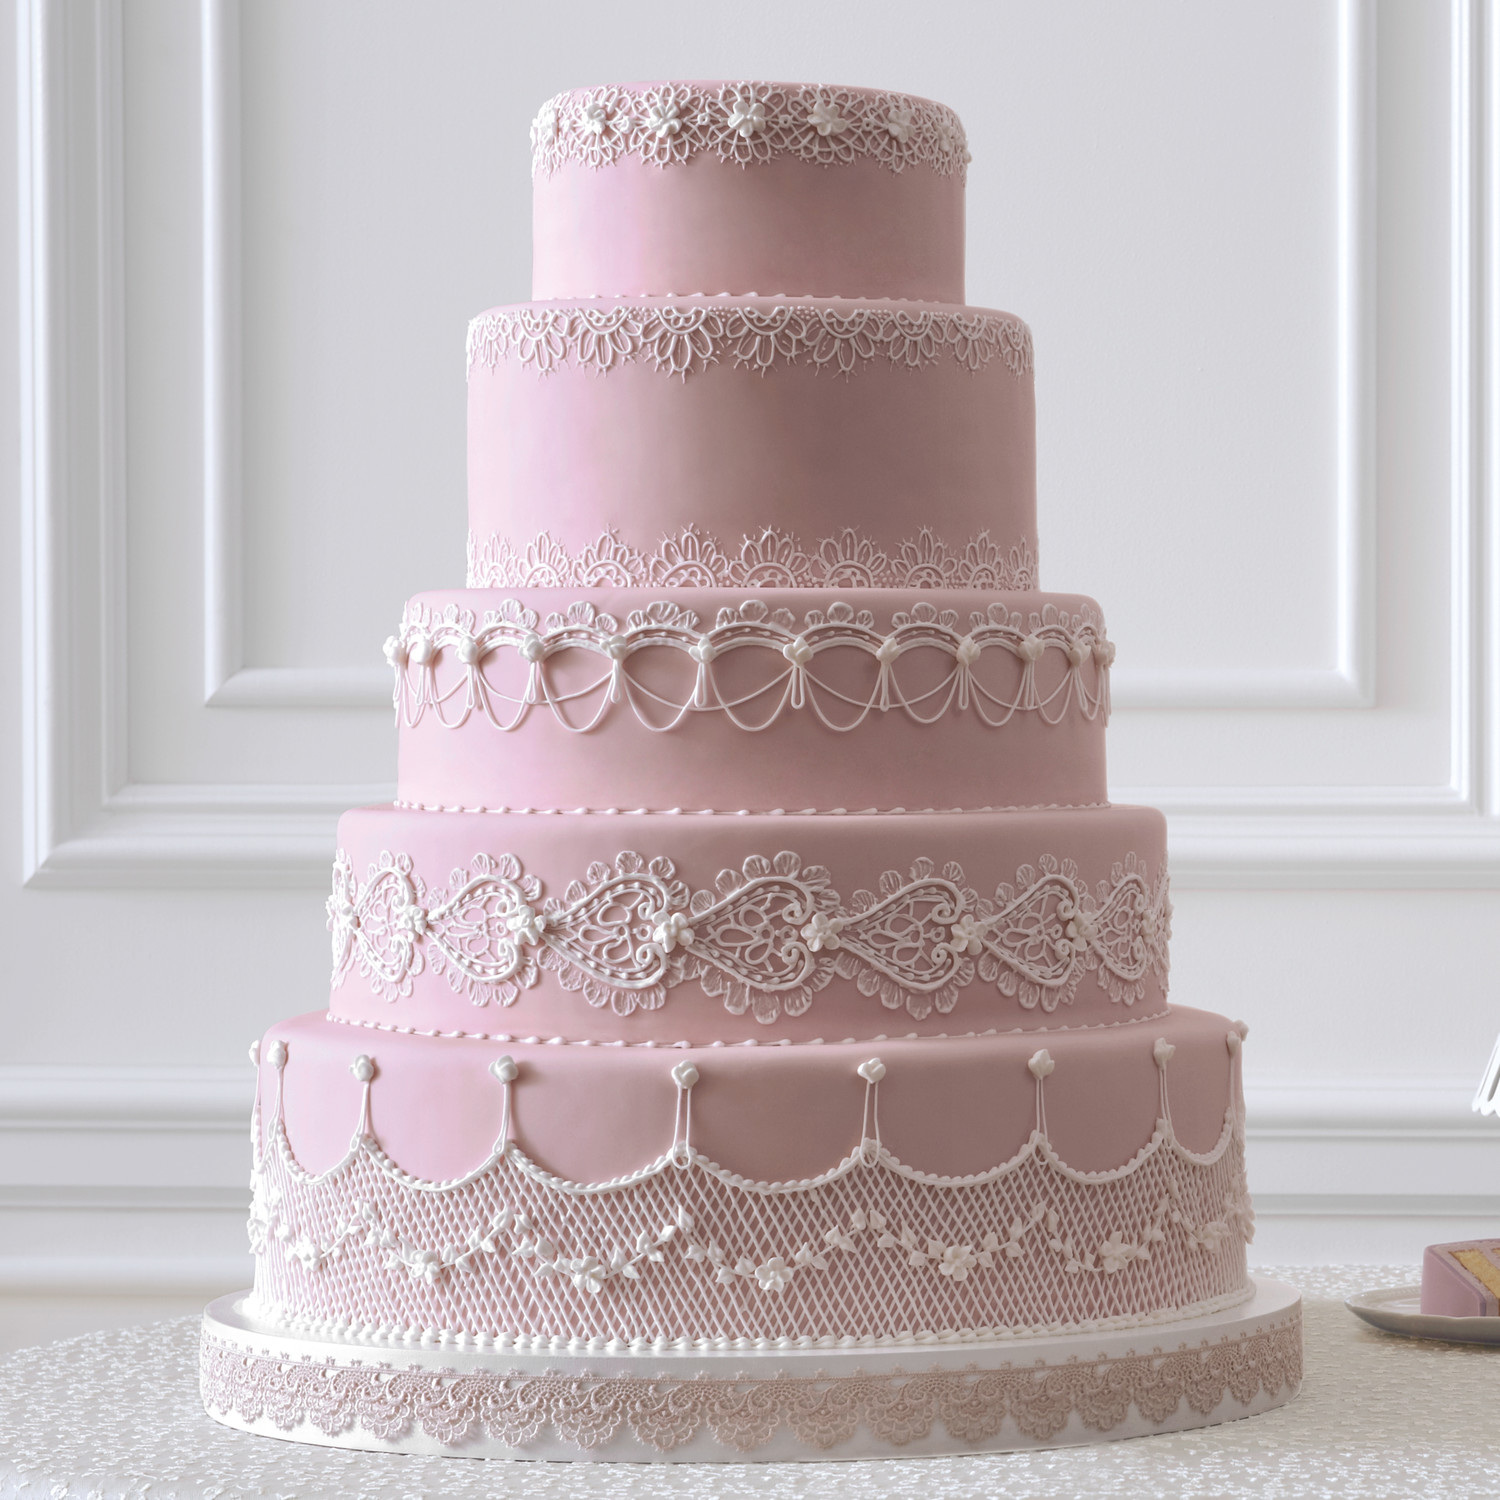 best icing to decorate a wedding cake the masters of the wedding cake martha stewart weddings 11341